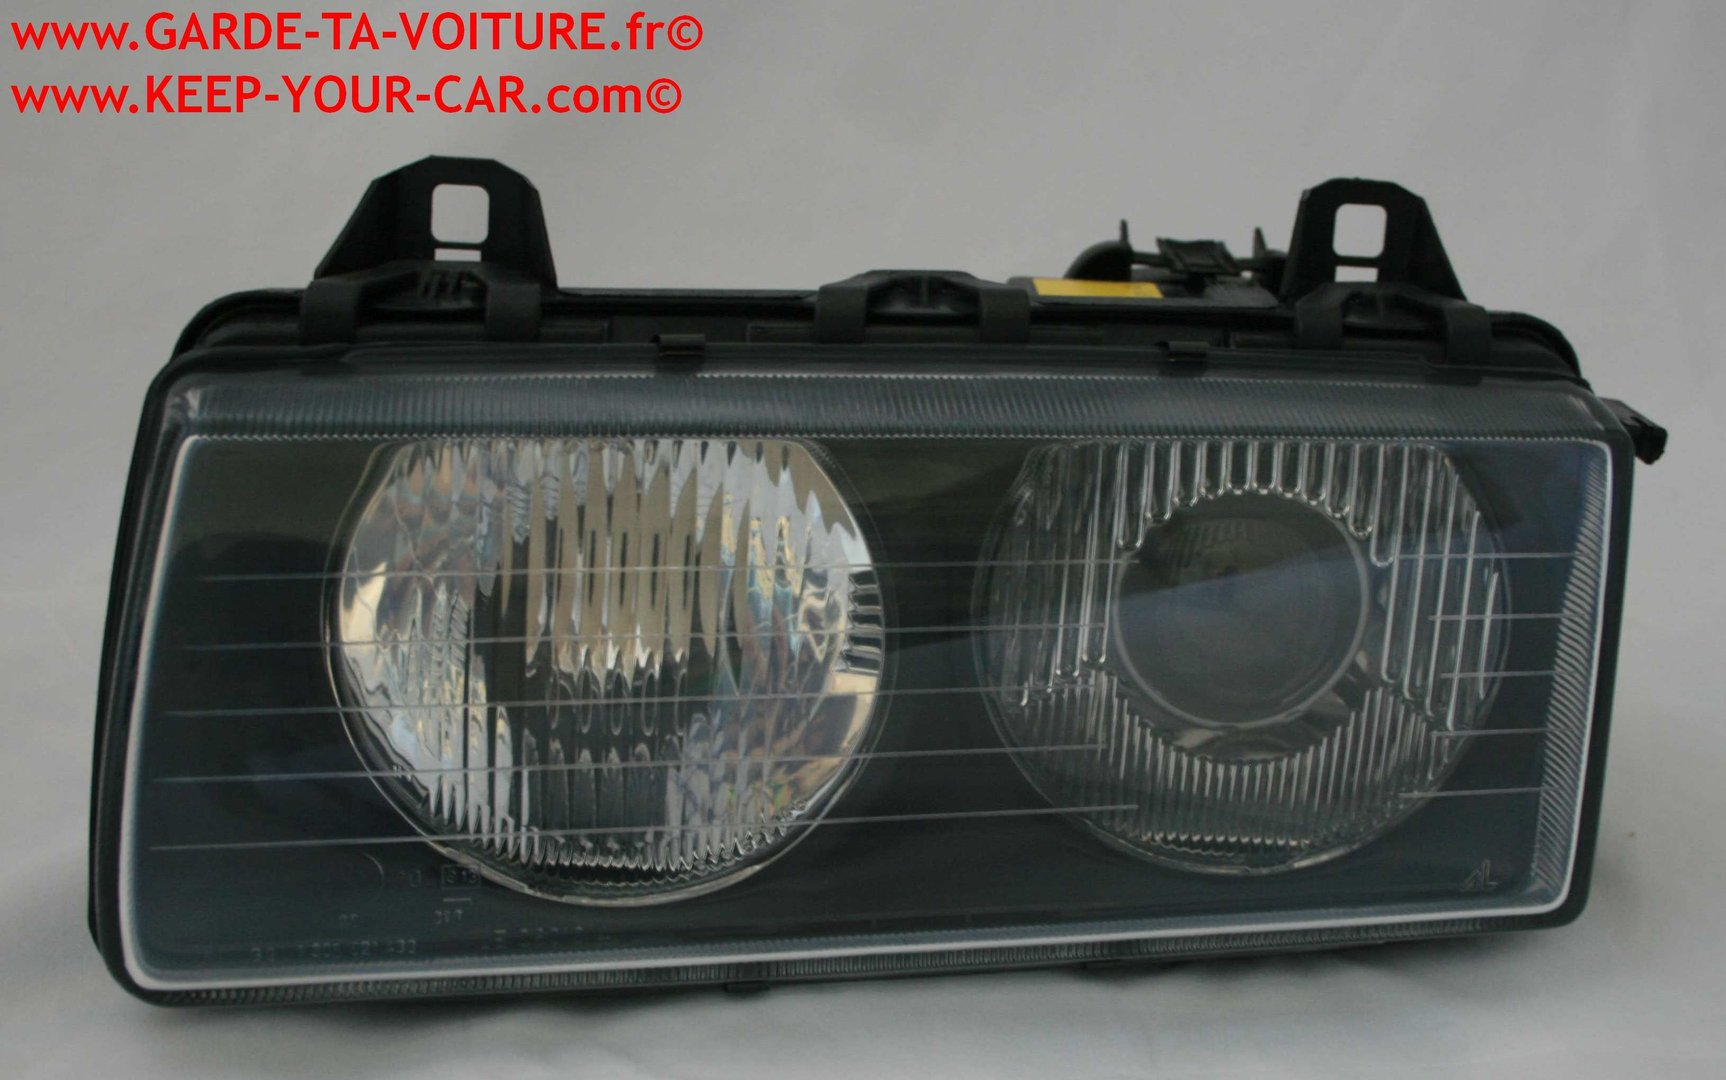 New Original Bosch Bmw E36 Front Headlight Complete Left Keep Your Car